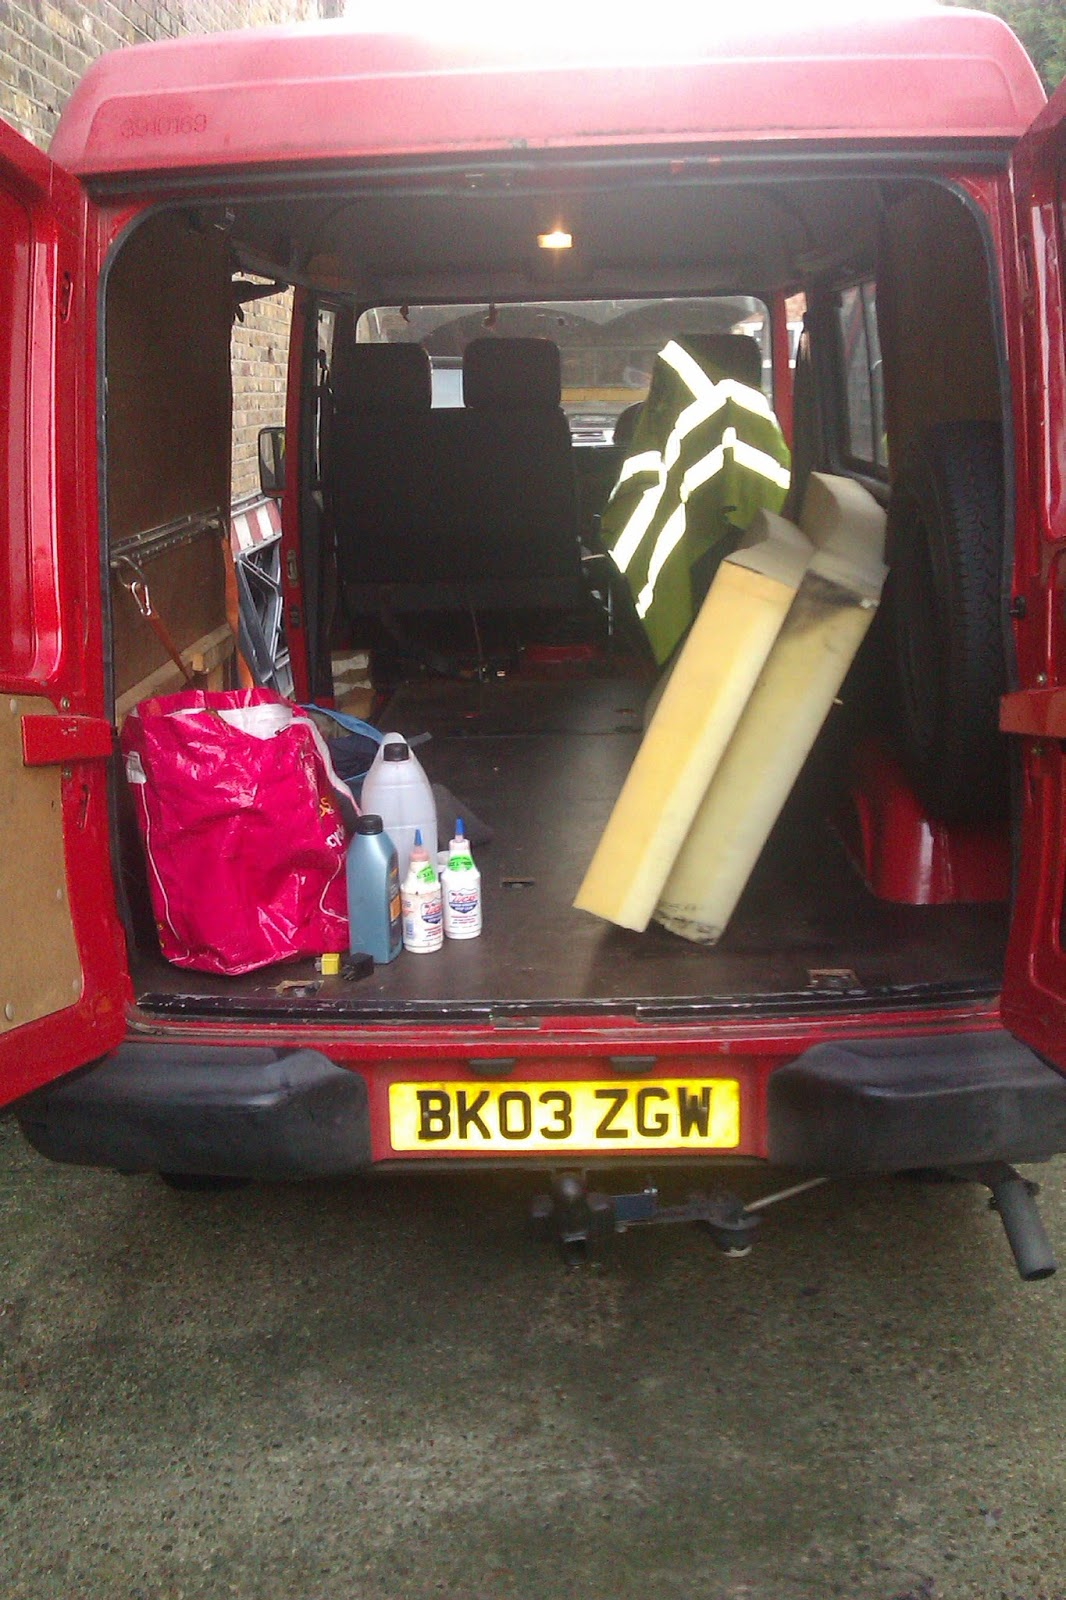 Ldv Pilot Van Ignition Switch Wiring Diagram Towball Set Up Some Oil Bottles Almost Full And New Specific Tools Diesel Can Nozzle Small Jack 2 Axle Stands Club Manual Cd